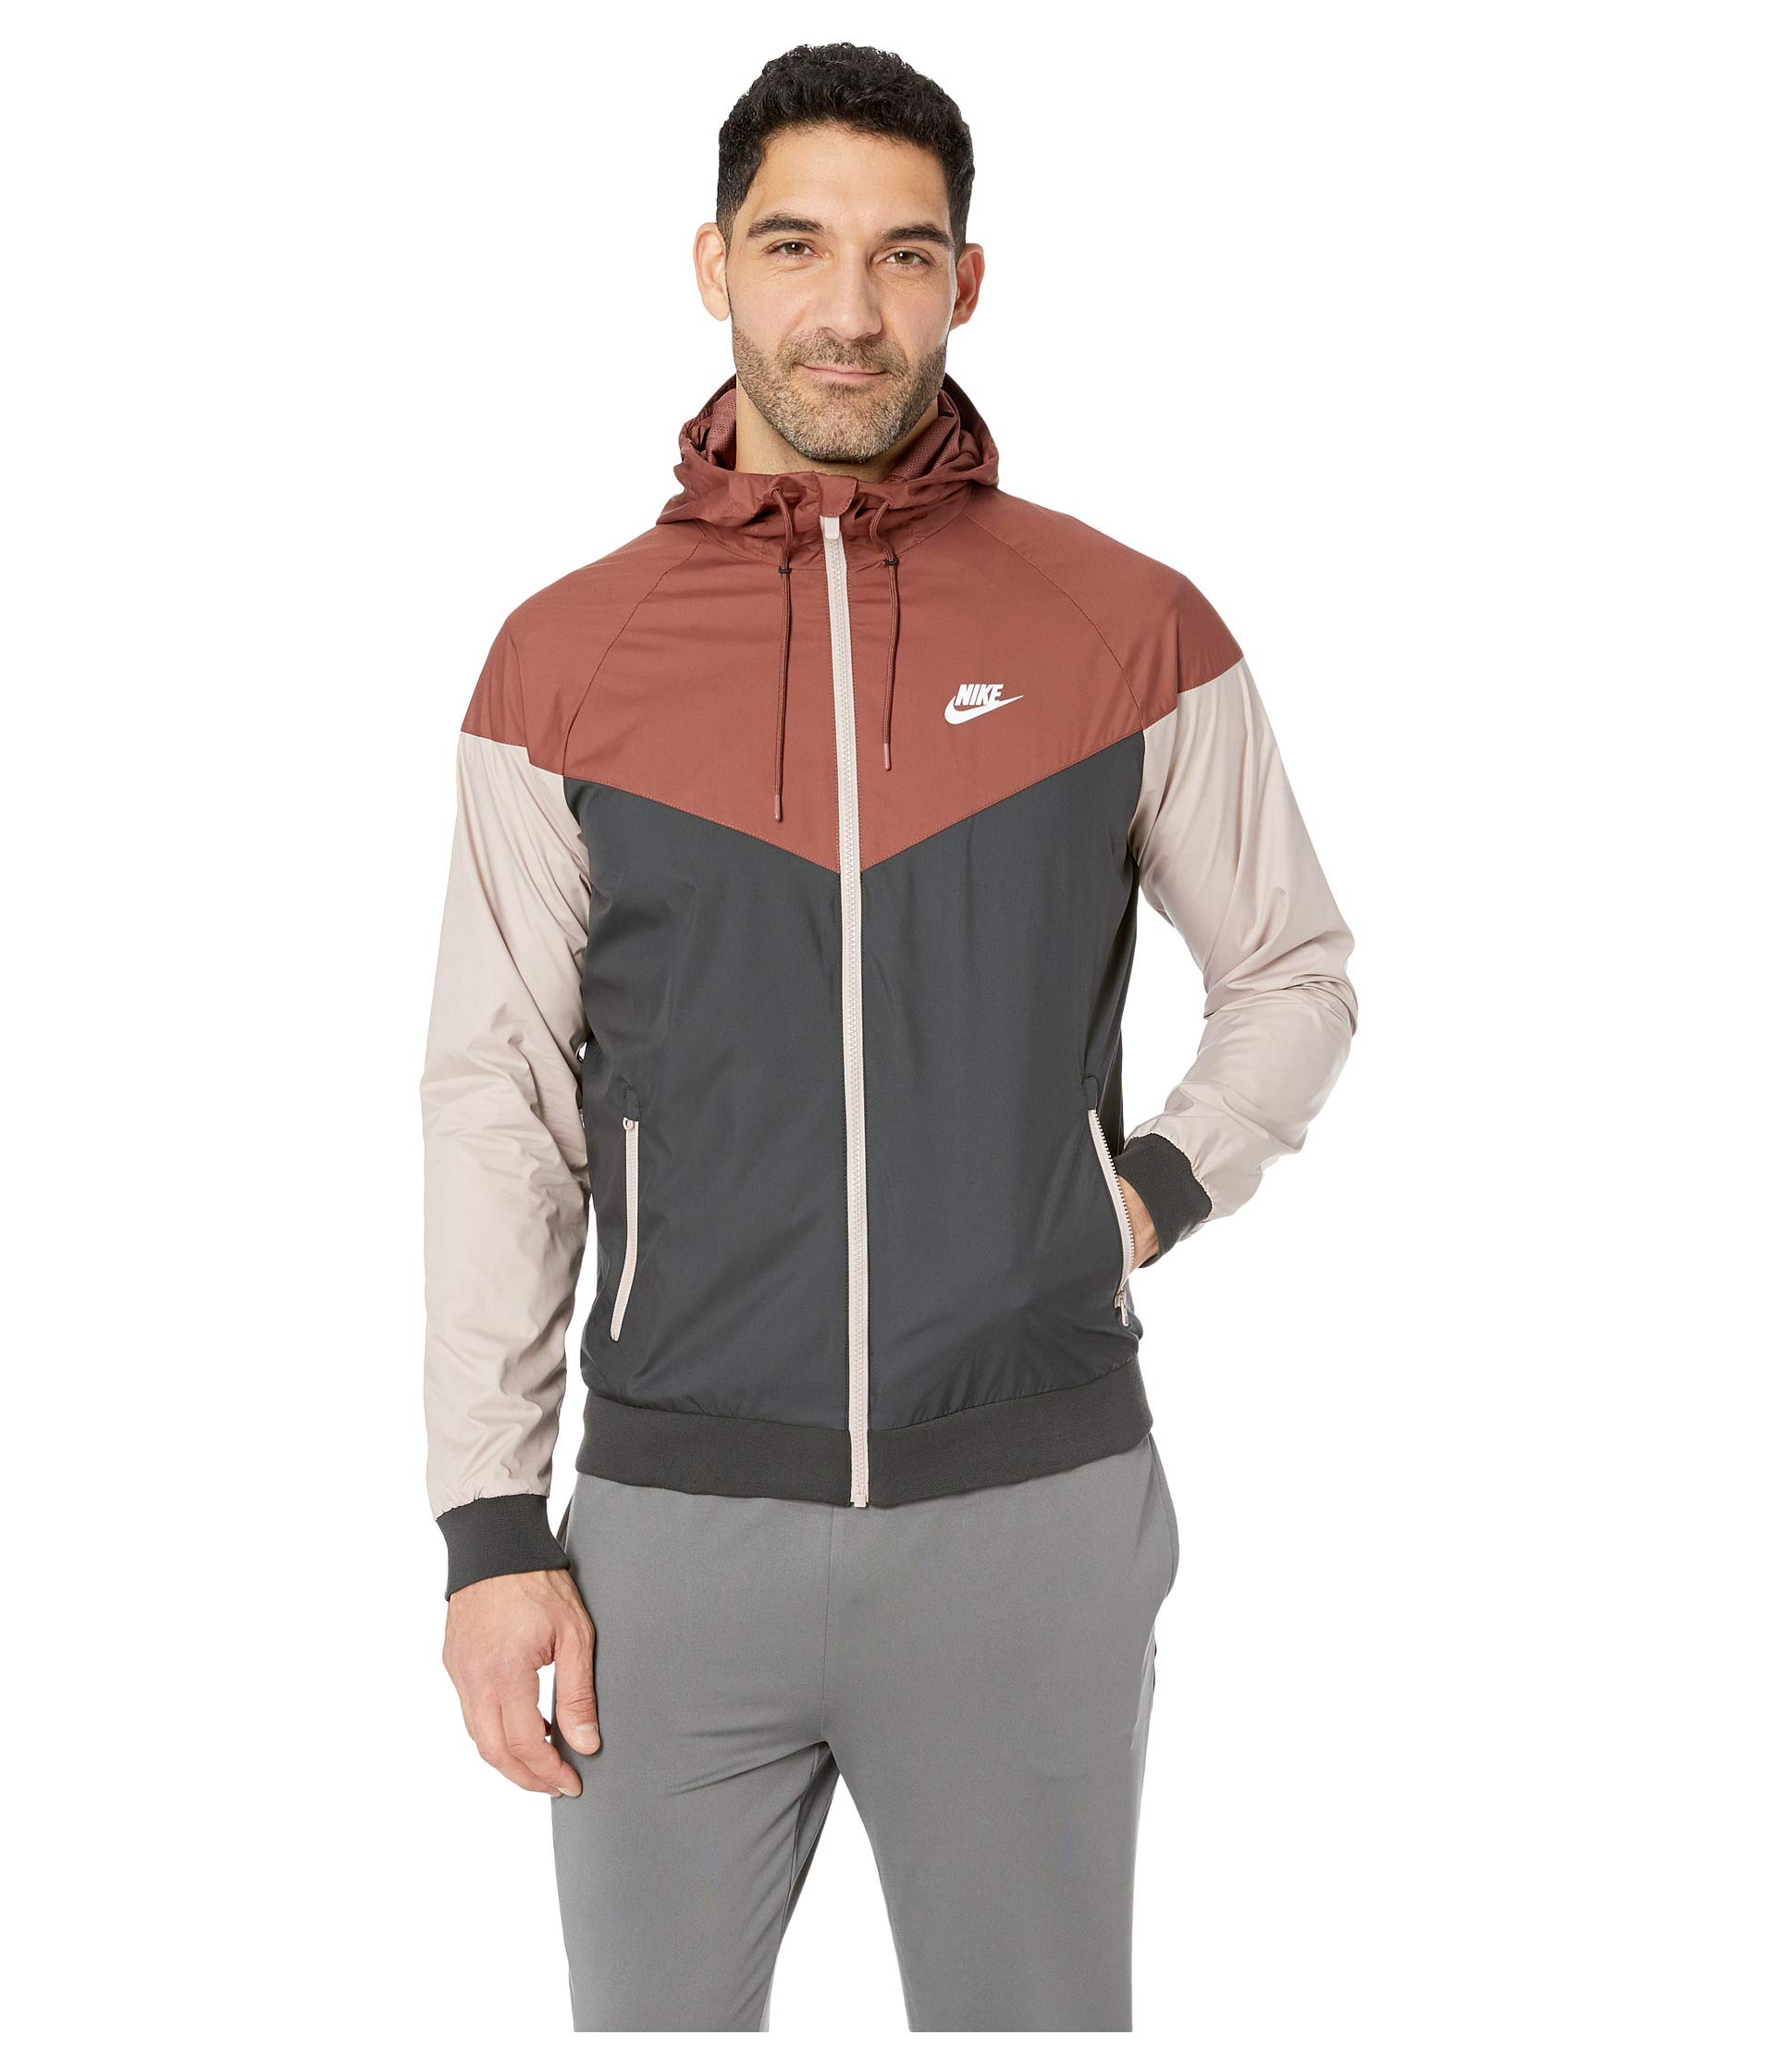 Nike Mens Windrunner Hooded Track Jacket Red Sepia/Black/Diffused Taupe 727324-236 Size X-Large by Nike